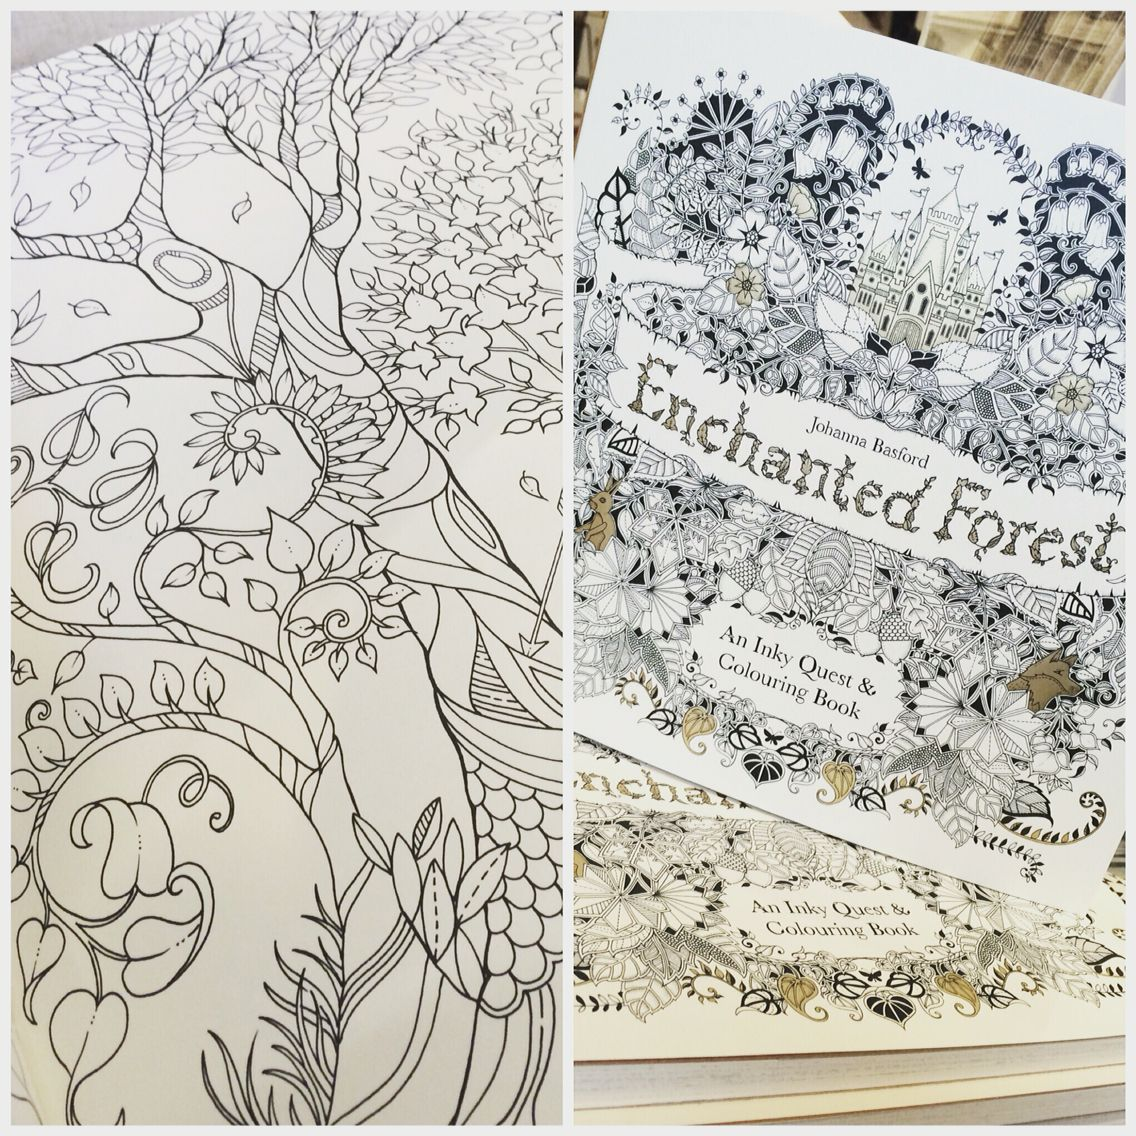 Now online. The beautiful adult colouring book from the wonderfully talented illustrator Johanna Basford. The perfect stress release.